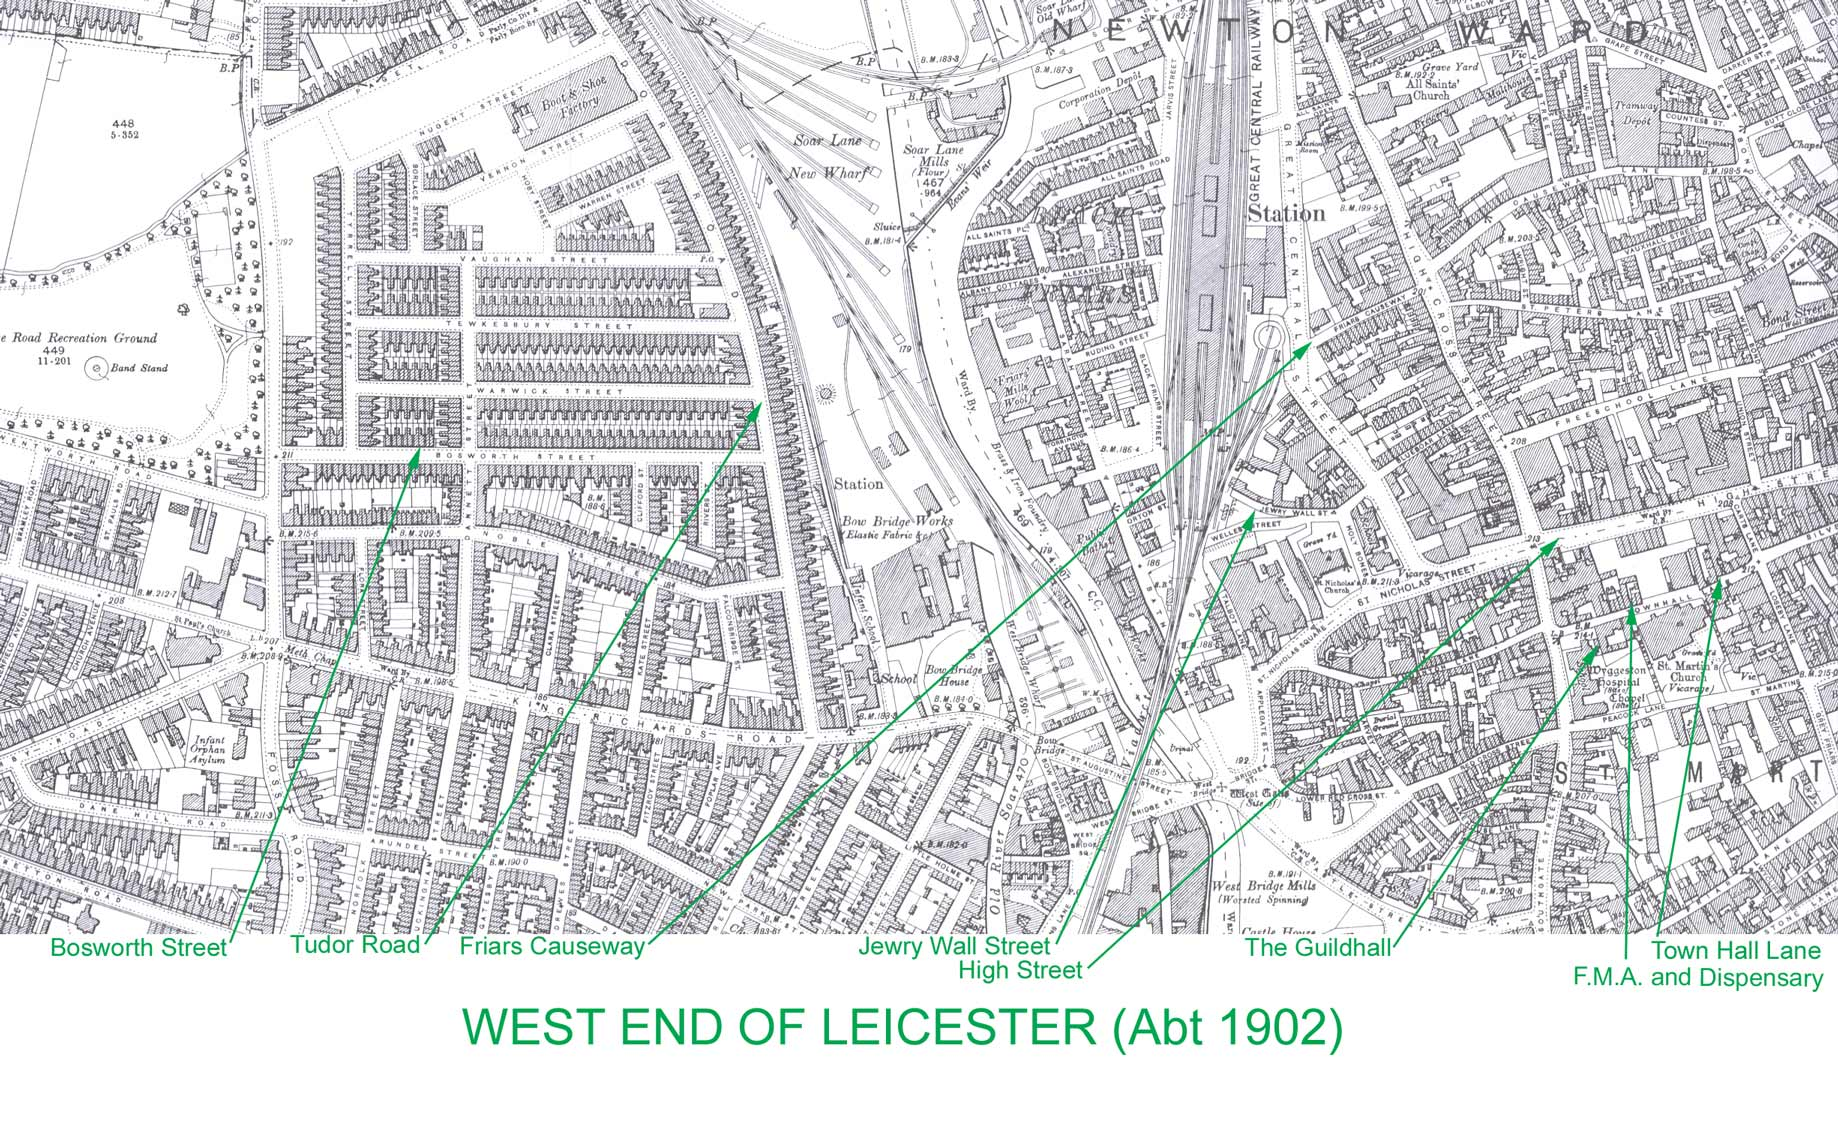 The West End of Leicester 1902 map